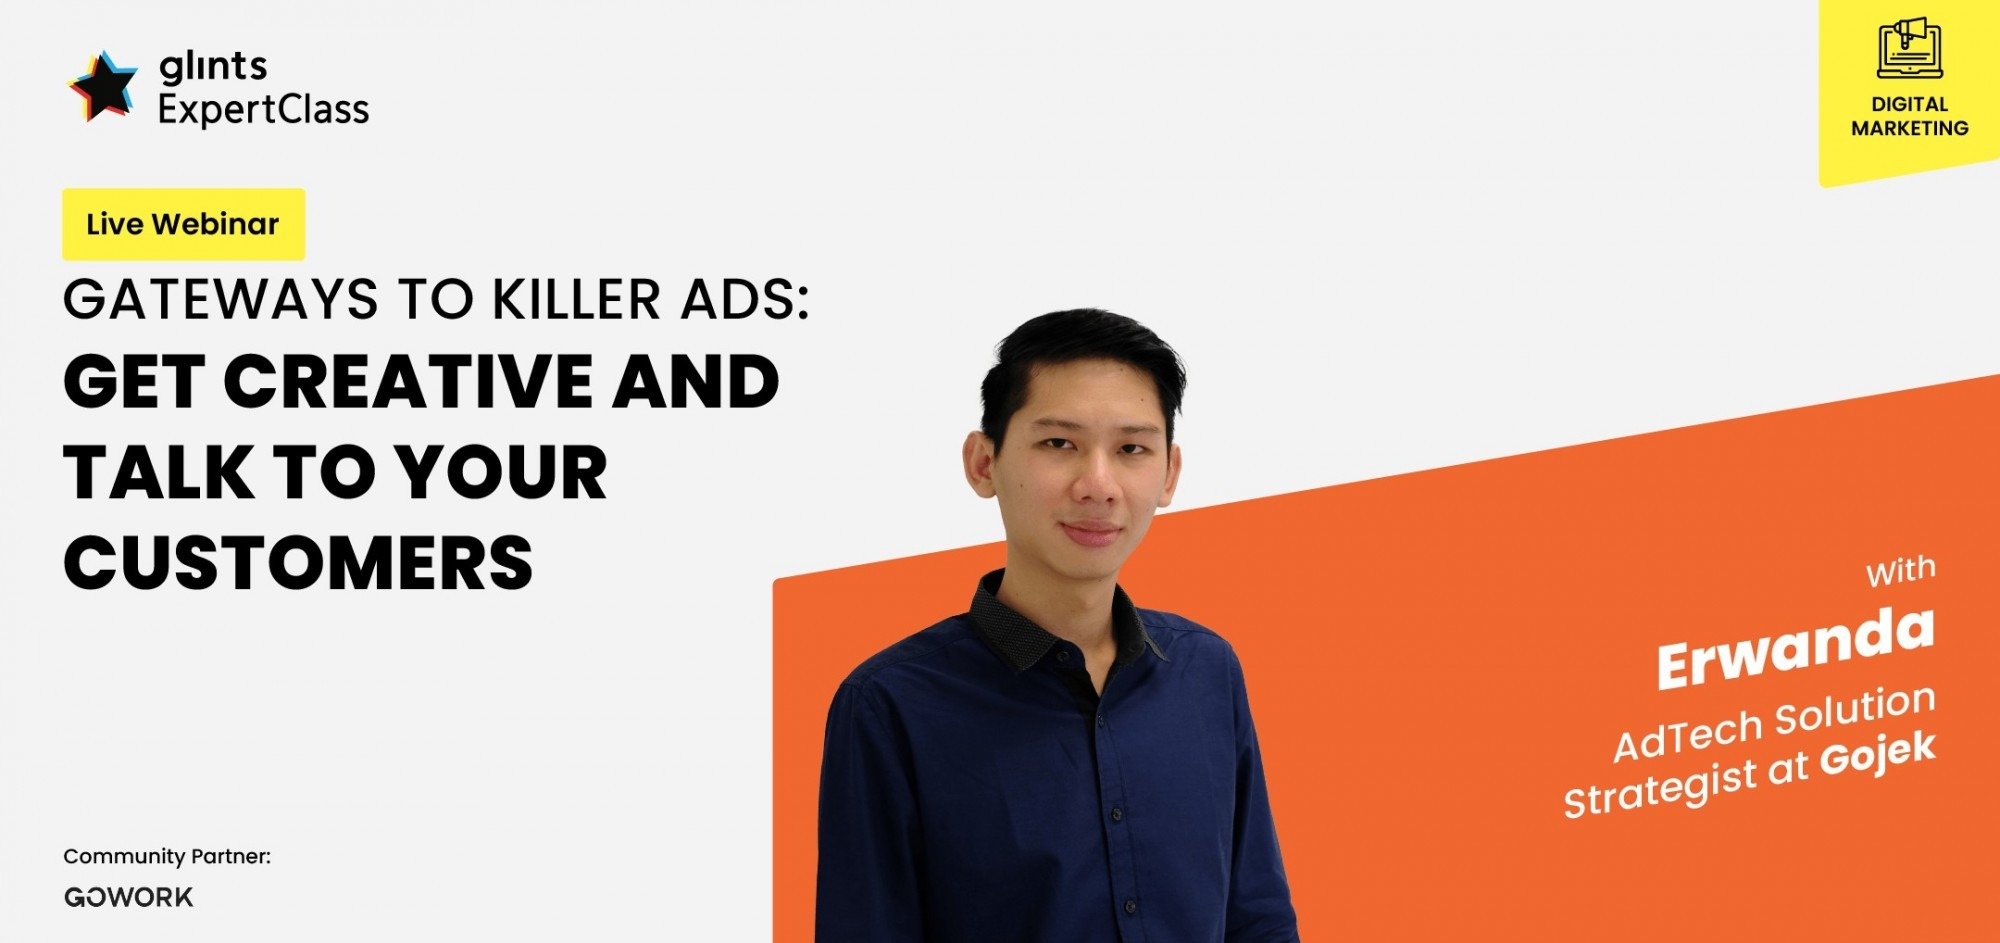 [Online Glints ExpertClass] Gateways to Killer Ads: Get Creative and Talk to Your Customers